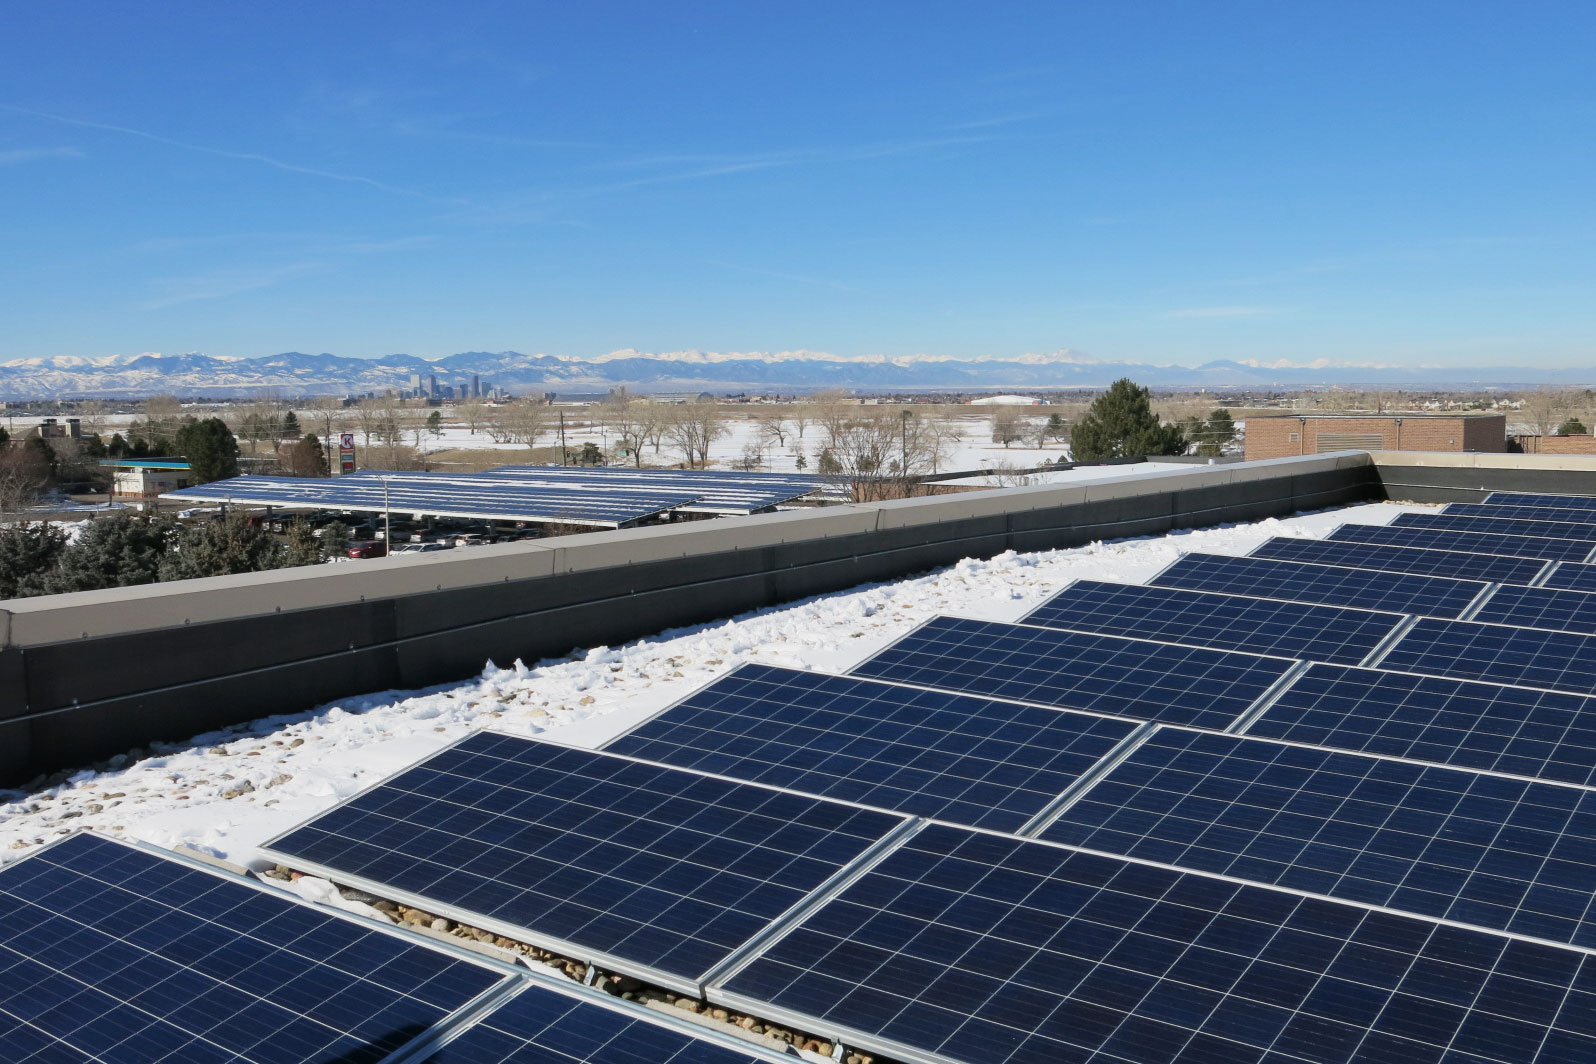 <p>Kaiser Permanente's regional Denver office hosts solar panels on its roof and carports. In an effort to reach its carbon neutral goal by 2020, Kaiser inked a deal to buy 200 megawatts of new wind and solar from sites in Arizona and California.</p>